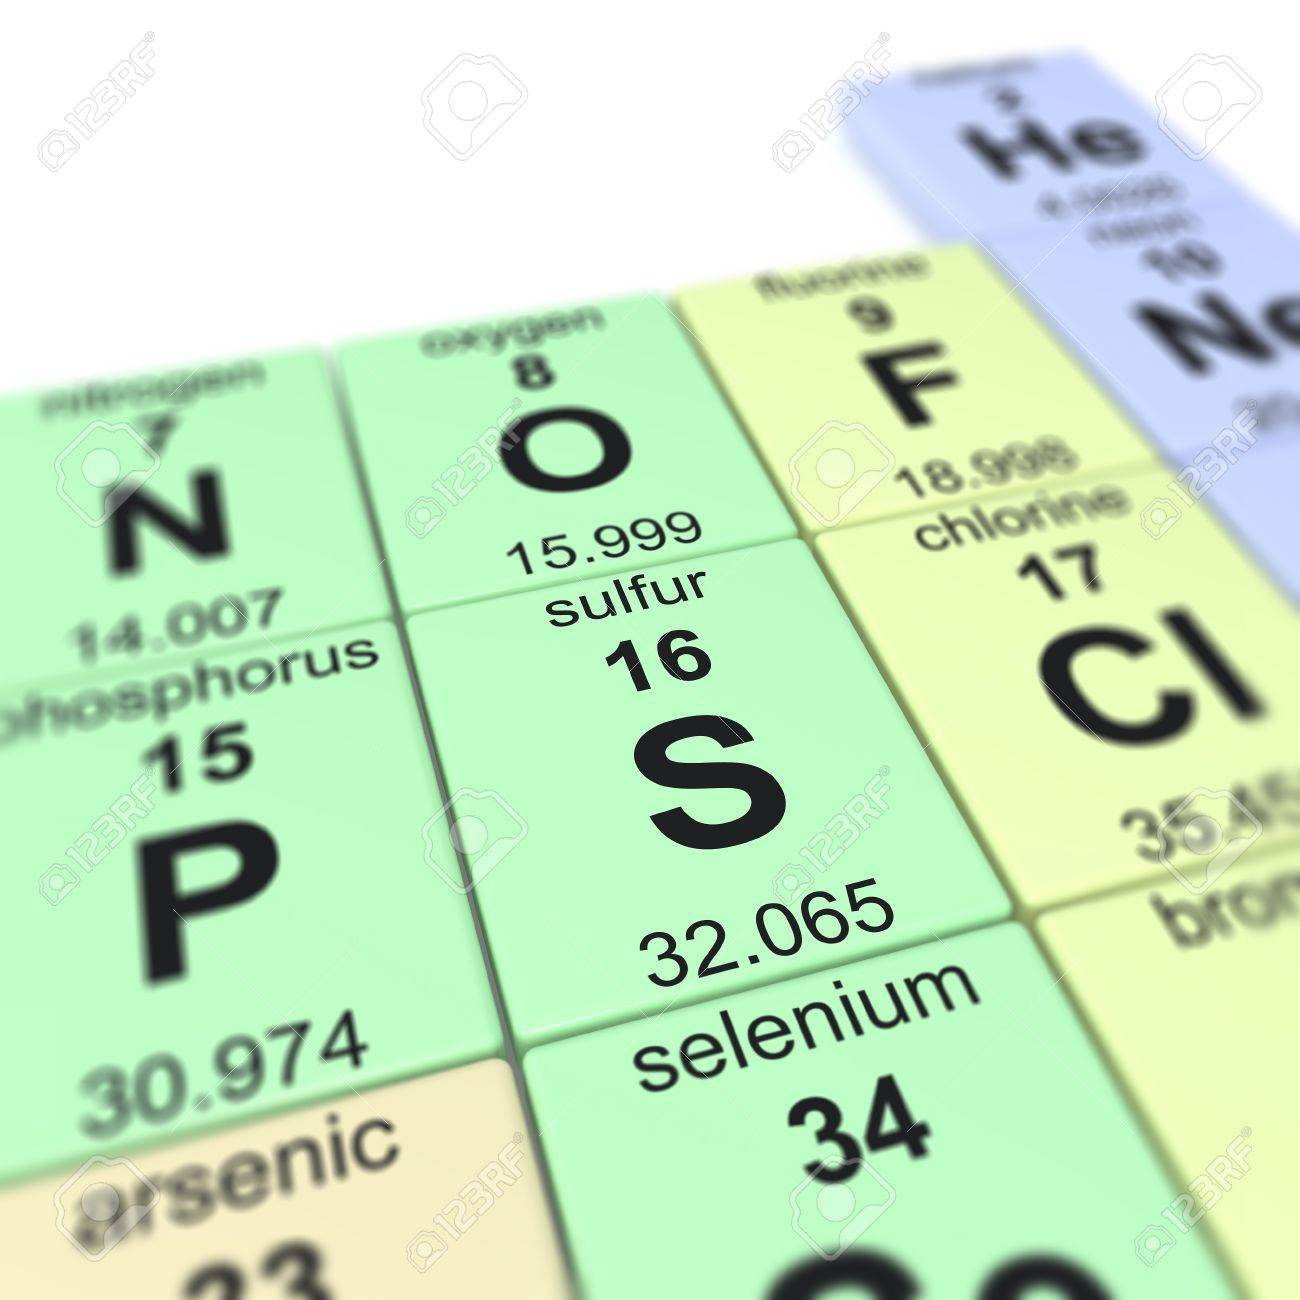 Periodic table of elements focused on sulfur stock photo picture periodic table of elements focused on sulfur stock photo 20109189 gamestrikefo Gallery